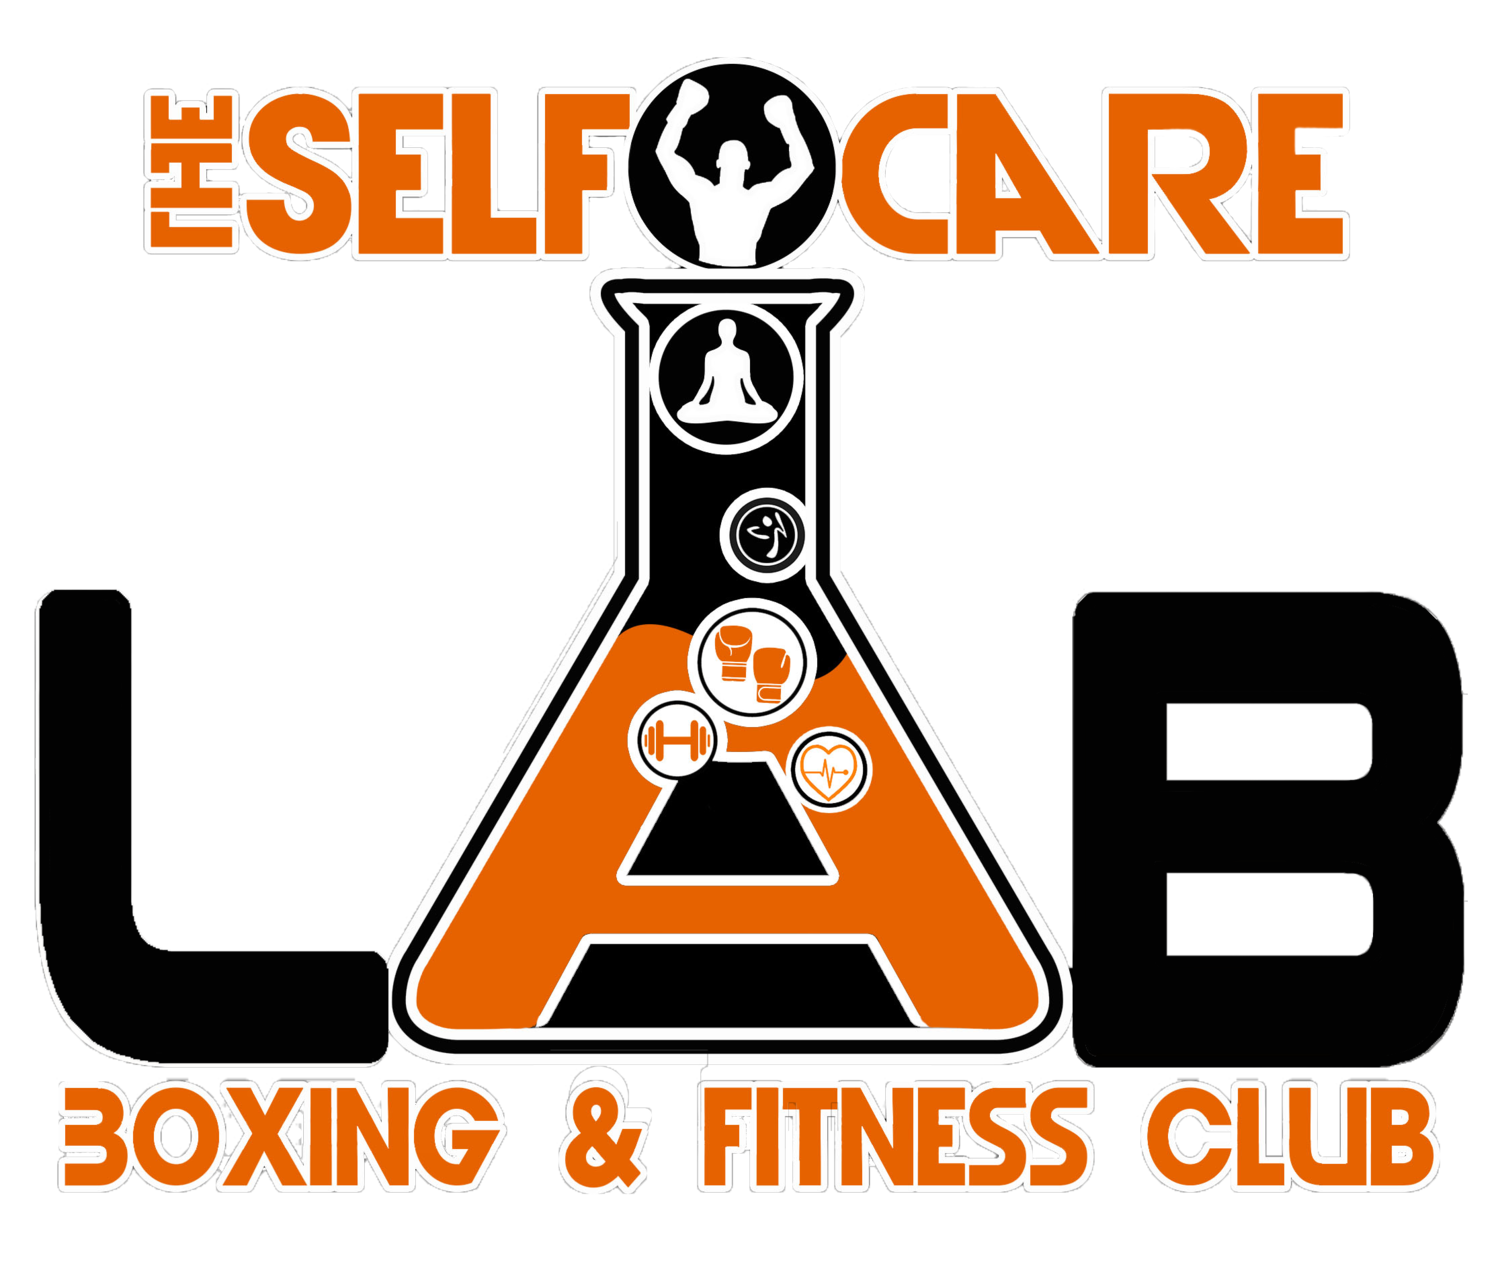 The Self-Care Lab Boxing & Fitness Club